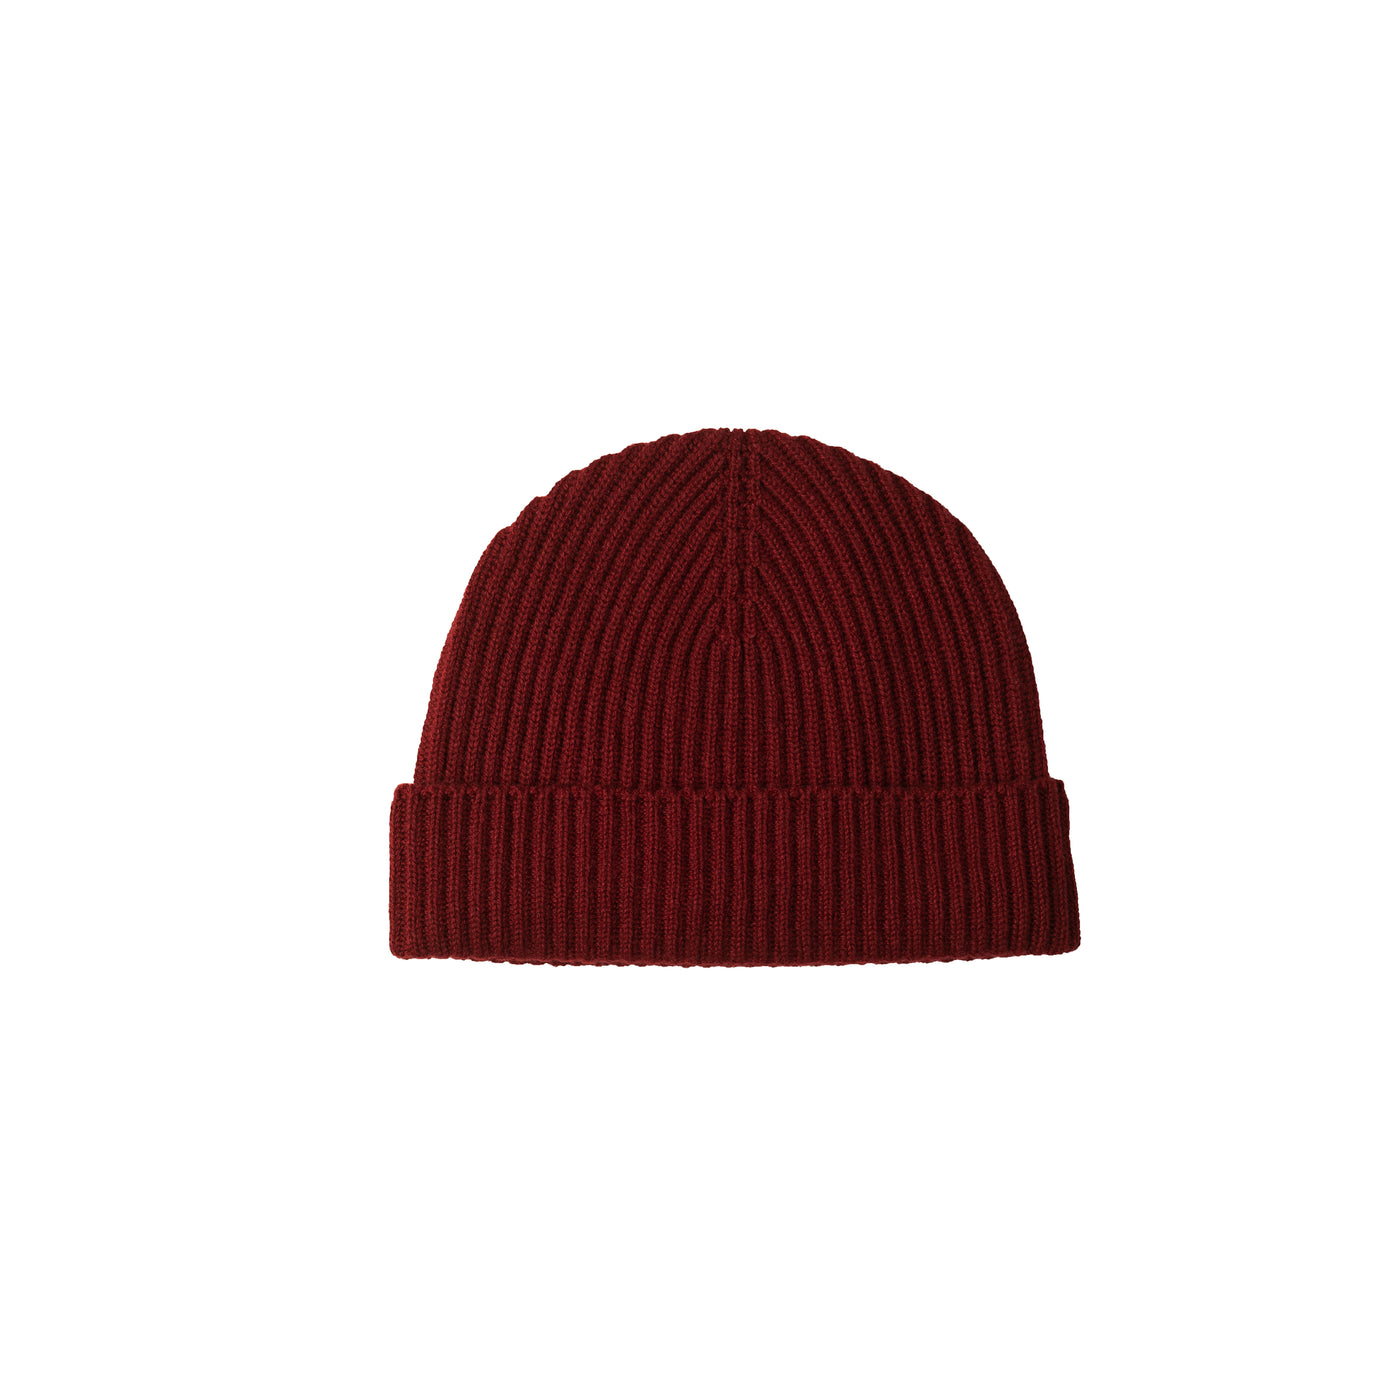 Cashmere Hat - Cabernet Red